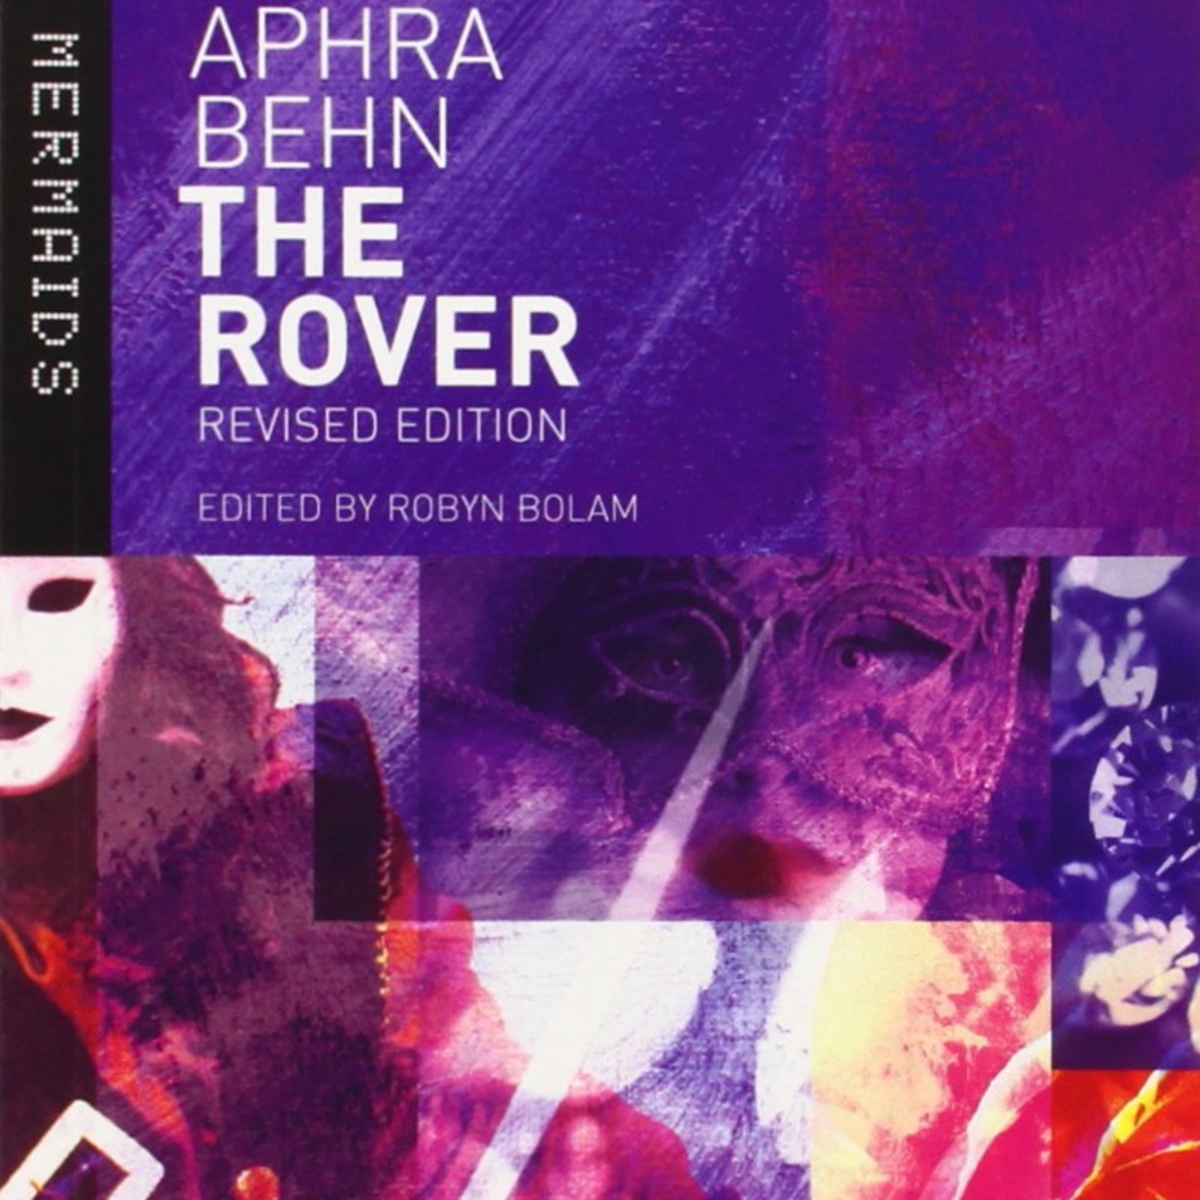 aphra behn s the rover evaluating women s Aphra behn was england's first professional woman writer, and not even mr reeve and his swashbuckling buddies can keep this good woman's sprightly voice down  but require that women.